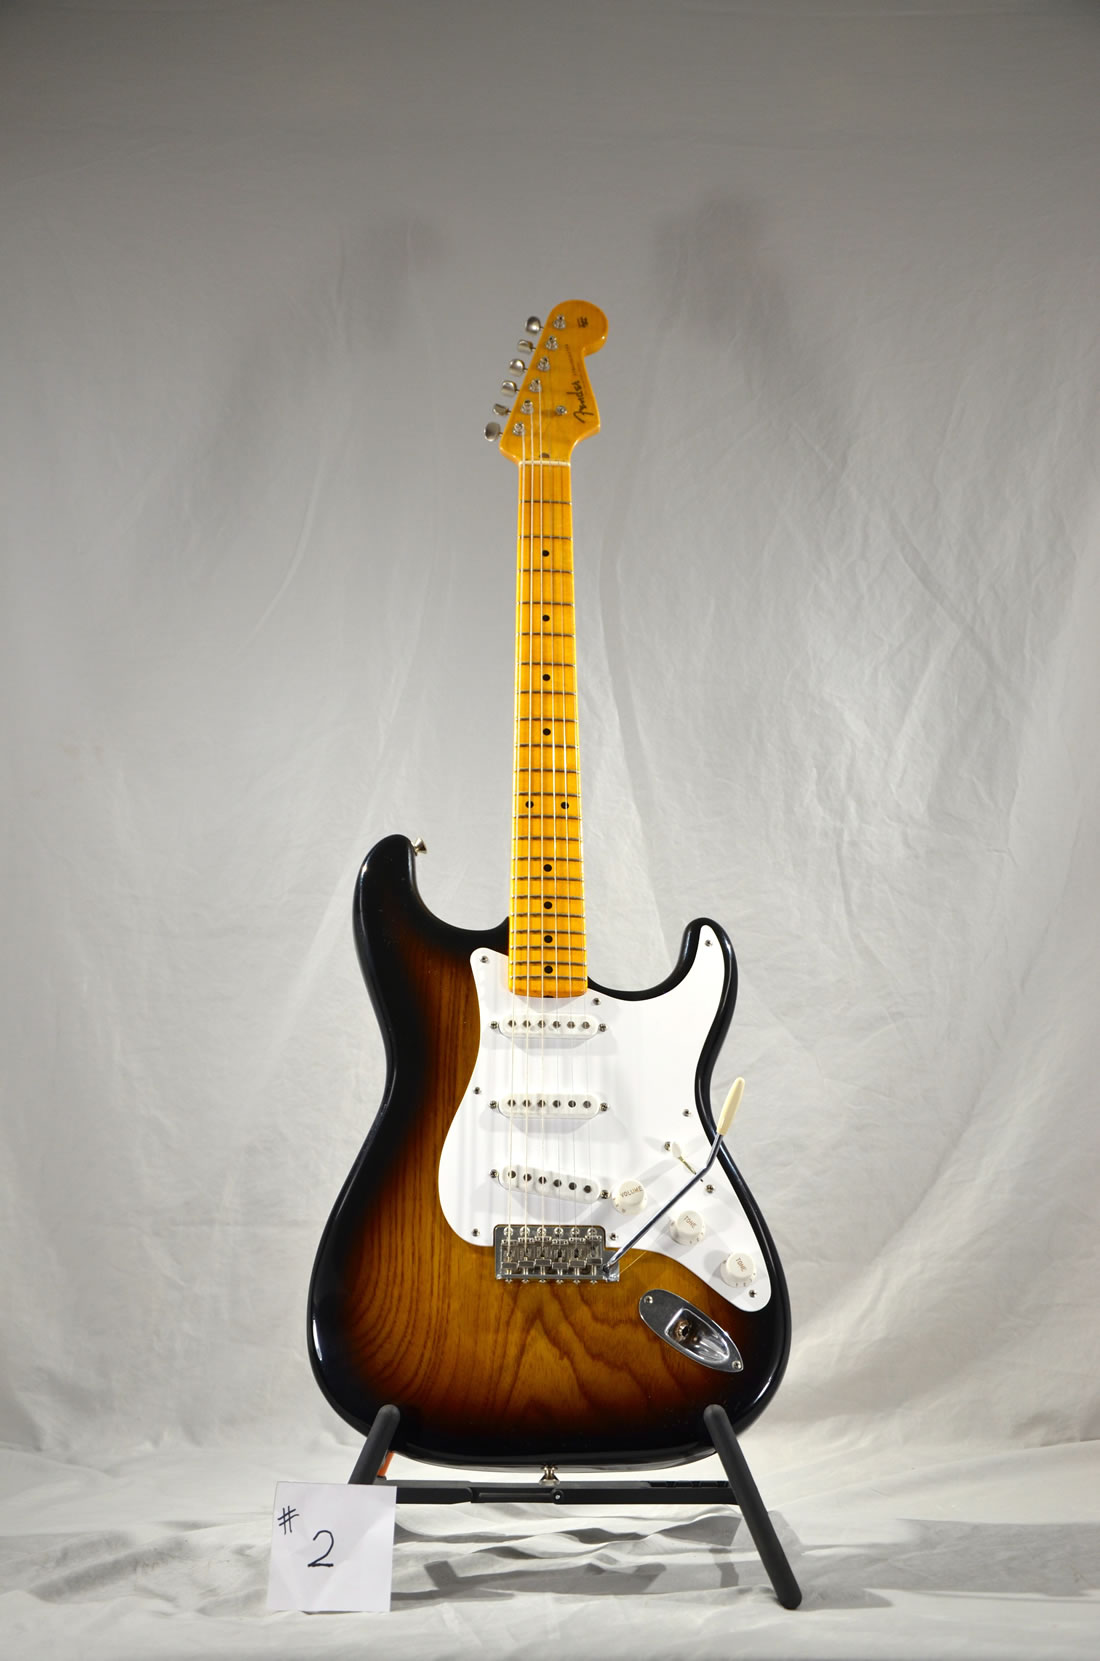 1954 Fender Stratocaster Limited Edition Reissue #2